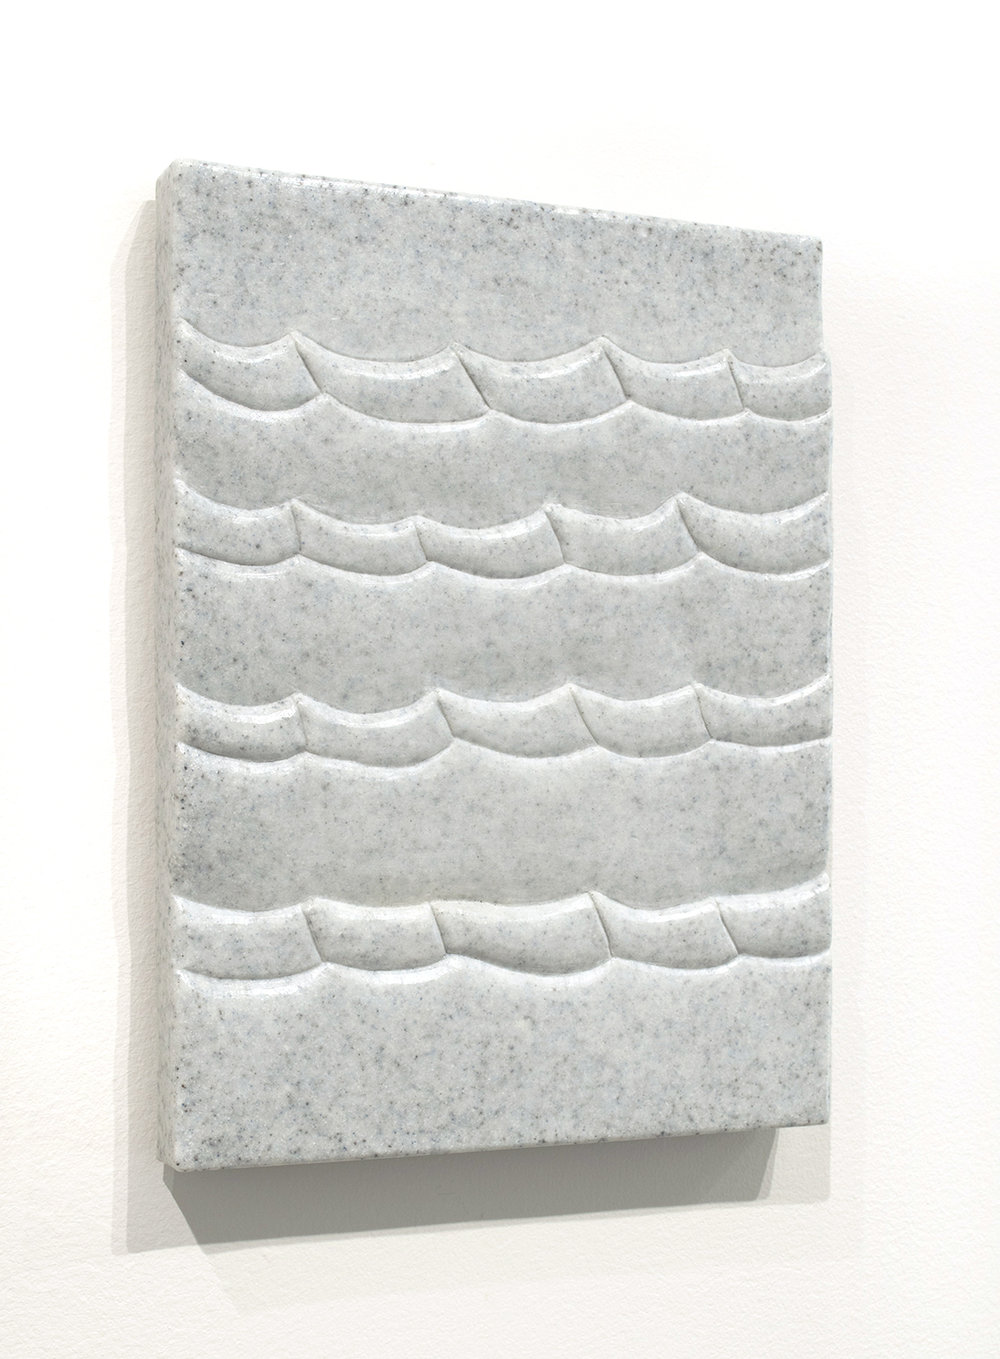 Sea Tablet (Capri),  2018  9 x 12 x 1.5 inches  Marble composite